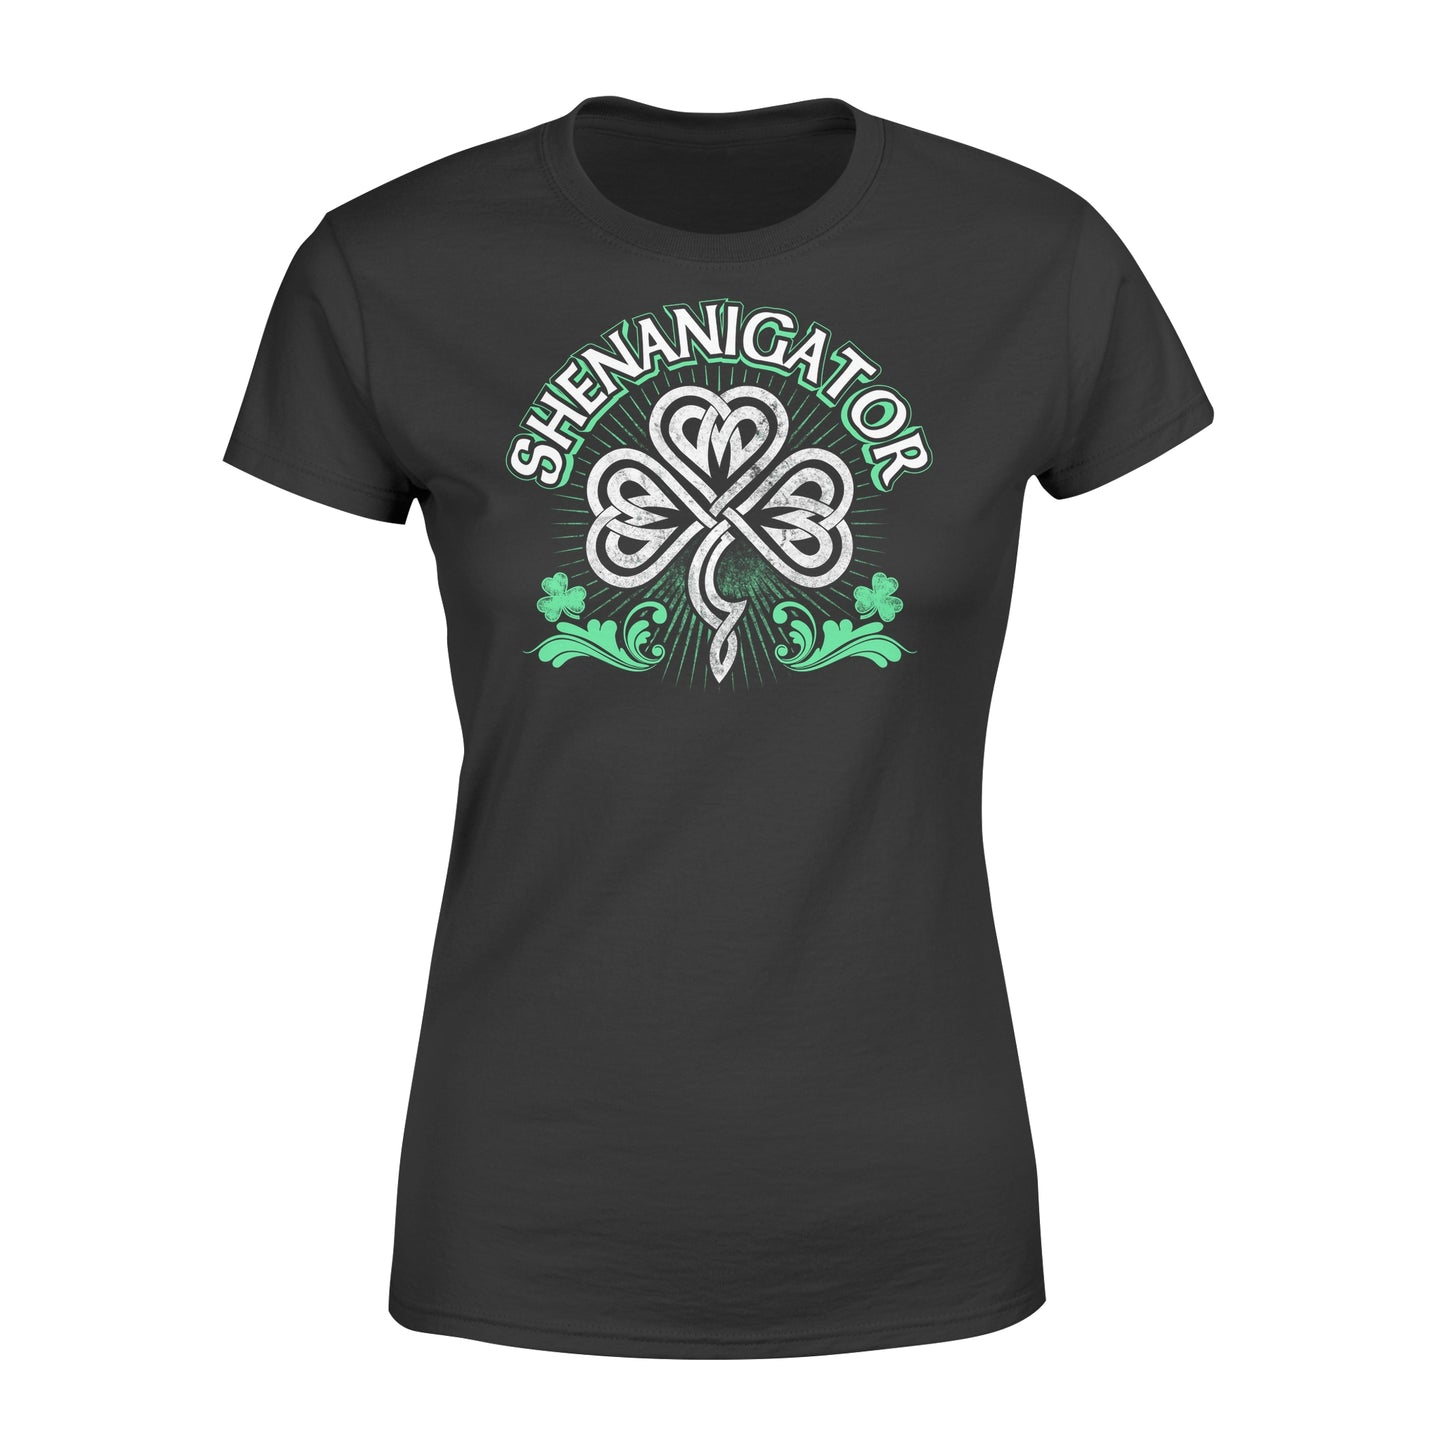 Shenanigator Irish St Patrick's Day - Standard Women's T-shirt